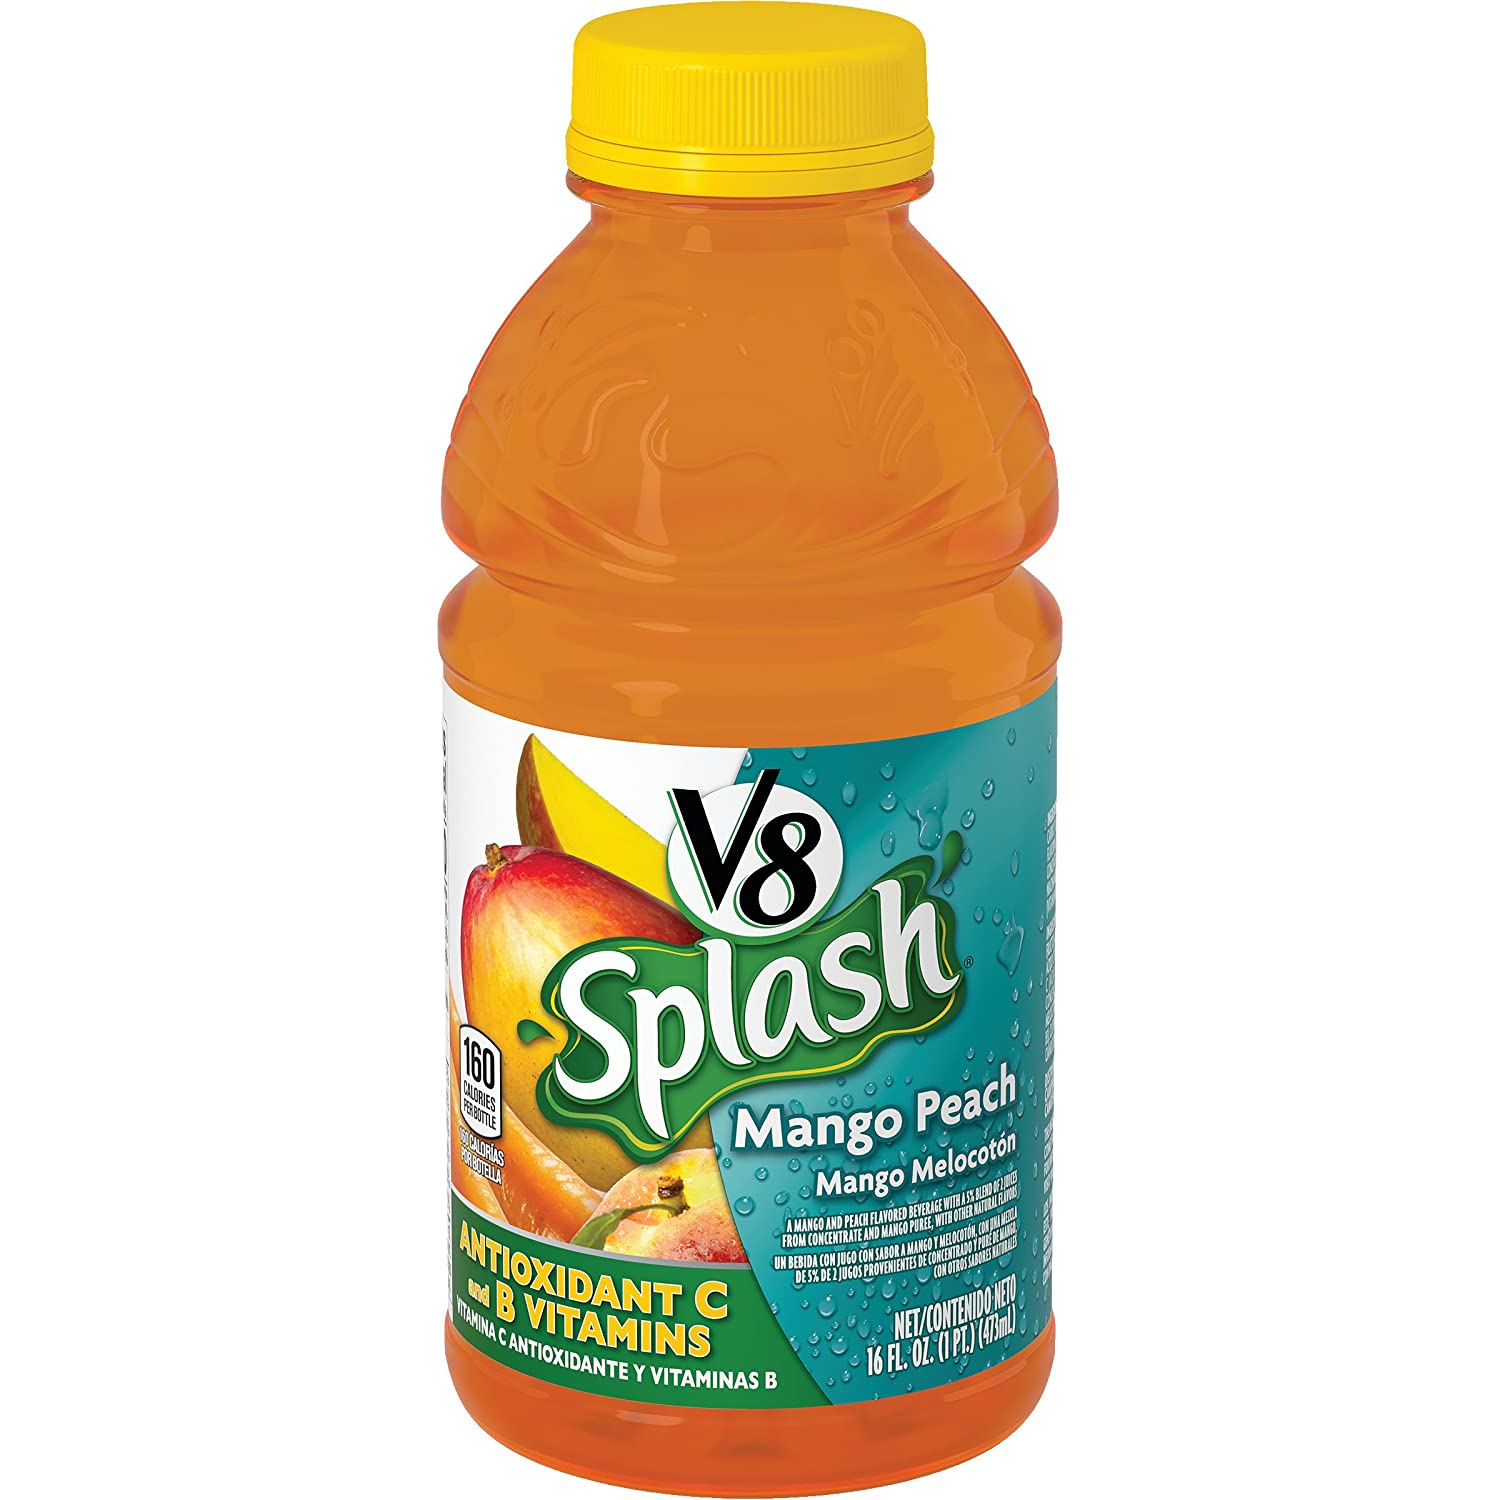 Amazon.com : V8 Splash Mango Peach, 16 oz. Bottle : Grocery & Gourmet Food